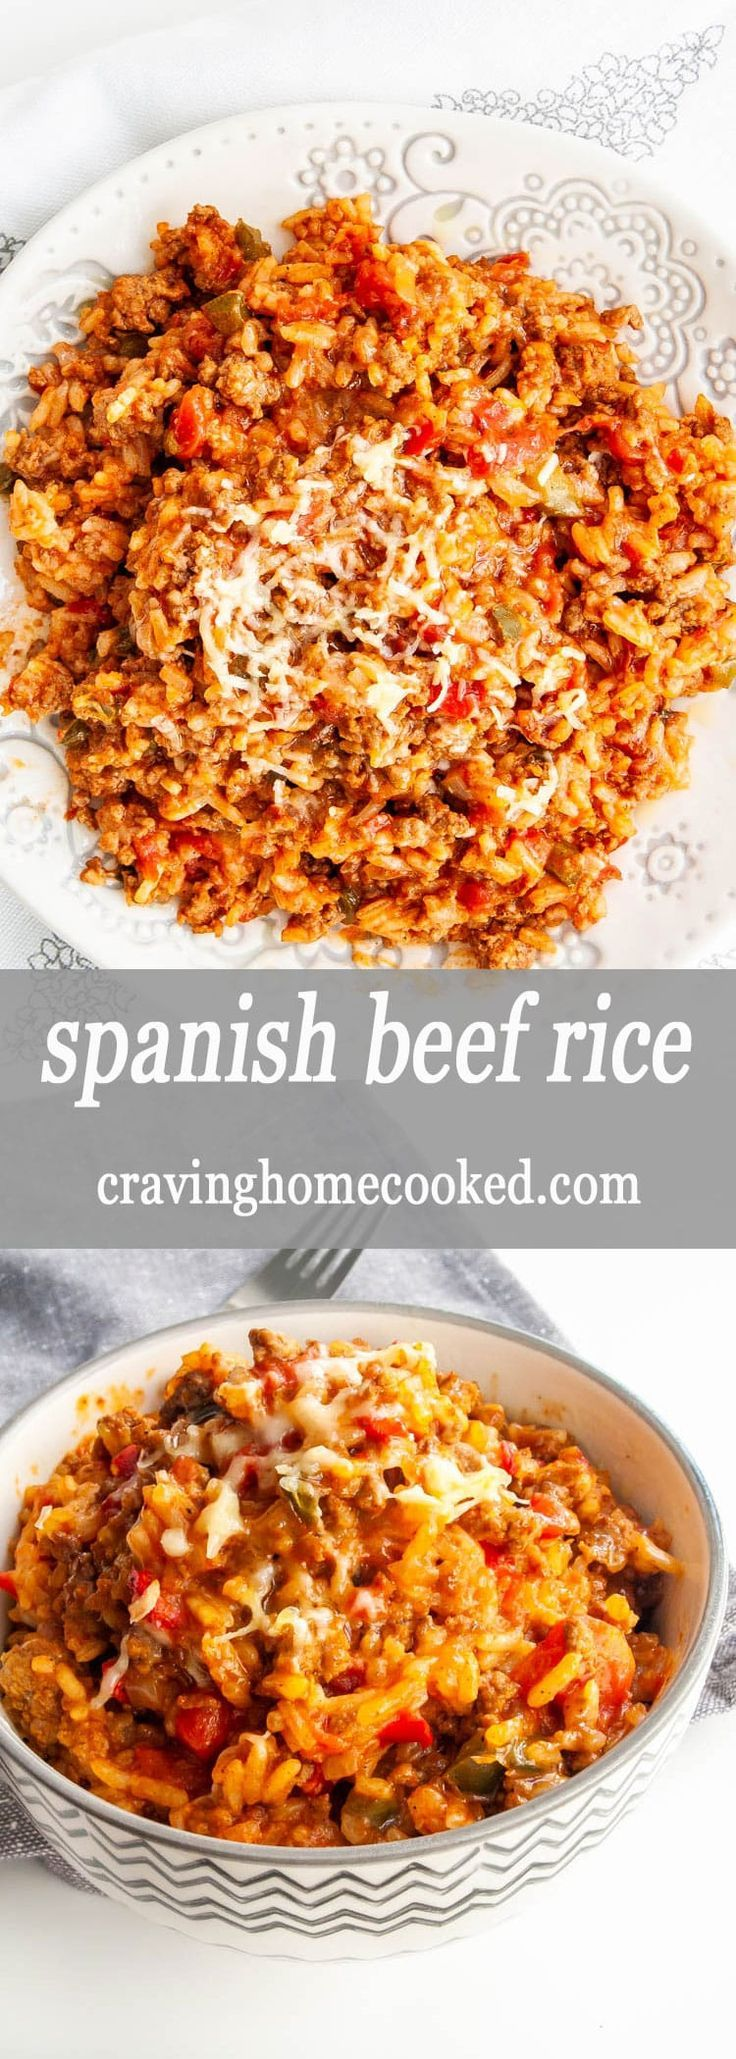 Spanish Rice With Ground Beef In 2020 Beef Recipes For Dinner Beef Recipes Easy Spanish Rice